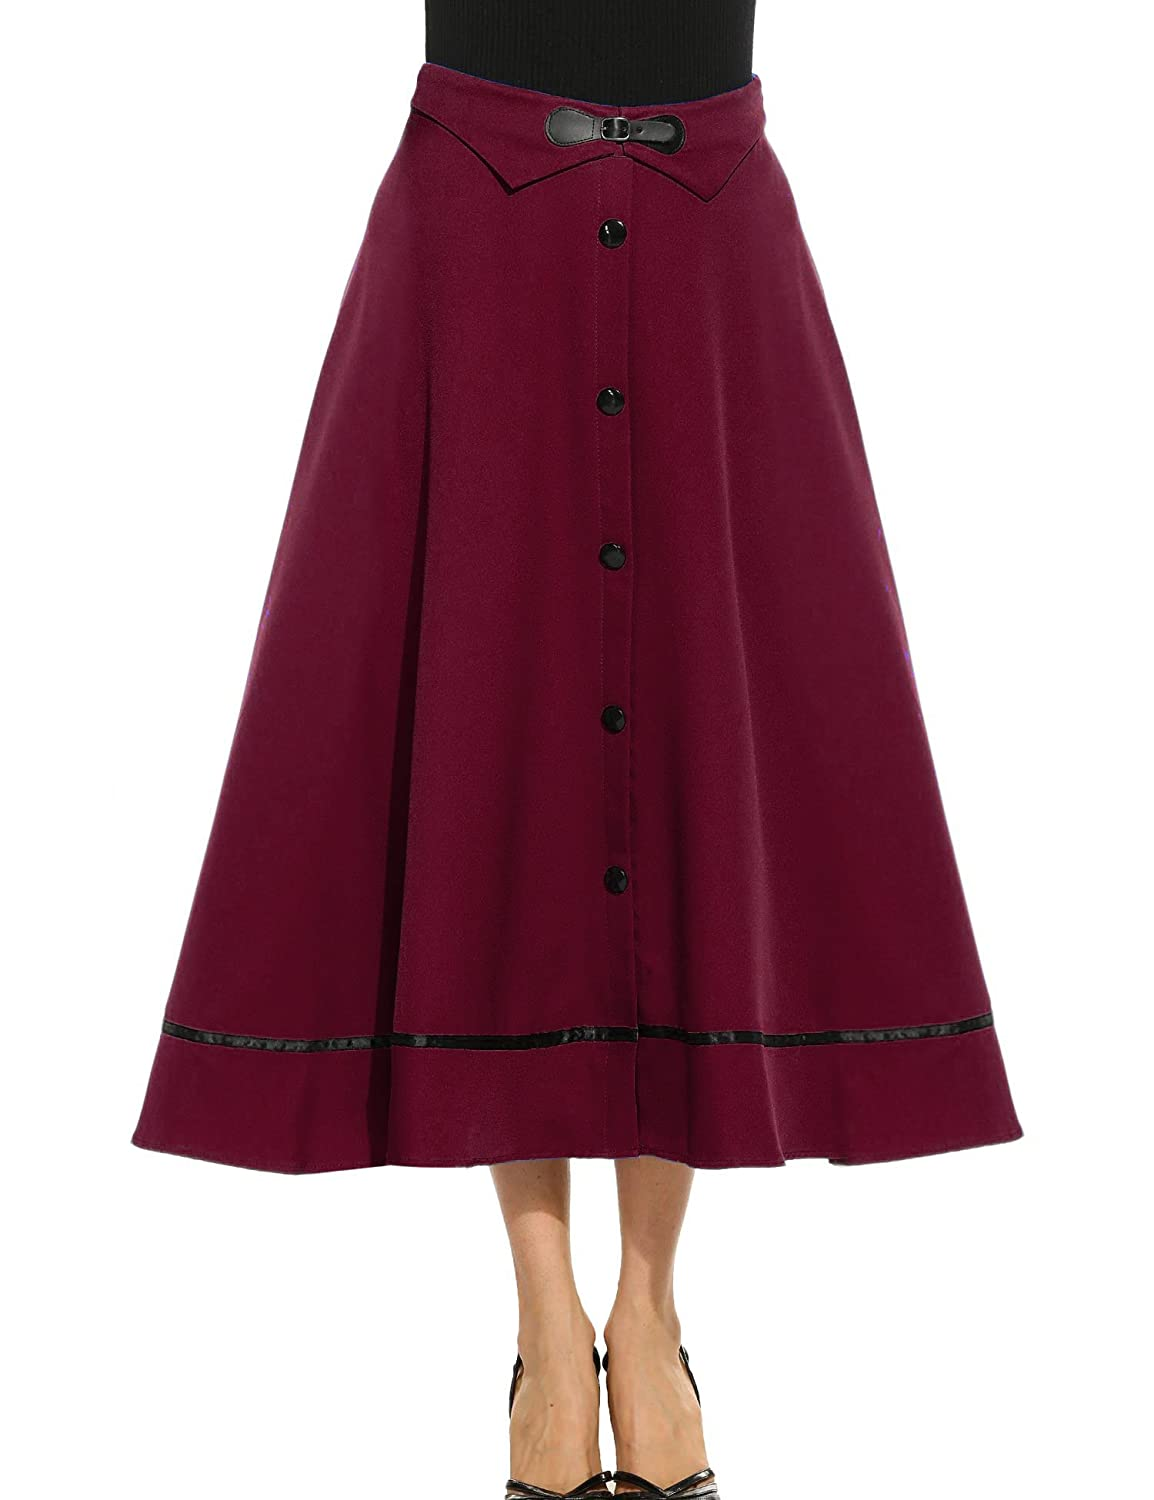 1940s Teenage Fashion: Girls ANGVNS Womens Vintage High Waist Button Down Pleated Swing Skirt $18.99 AT vintagedancer.com